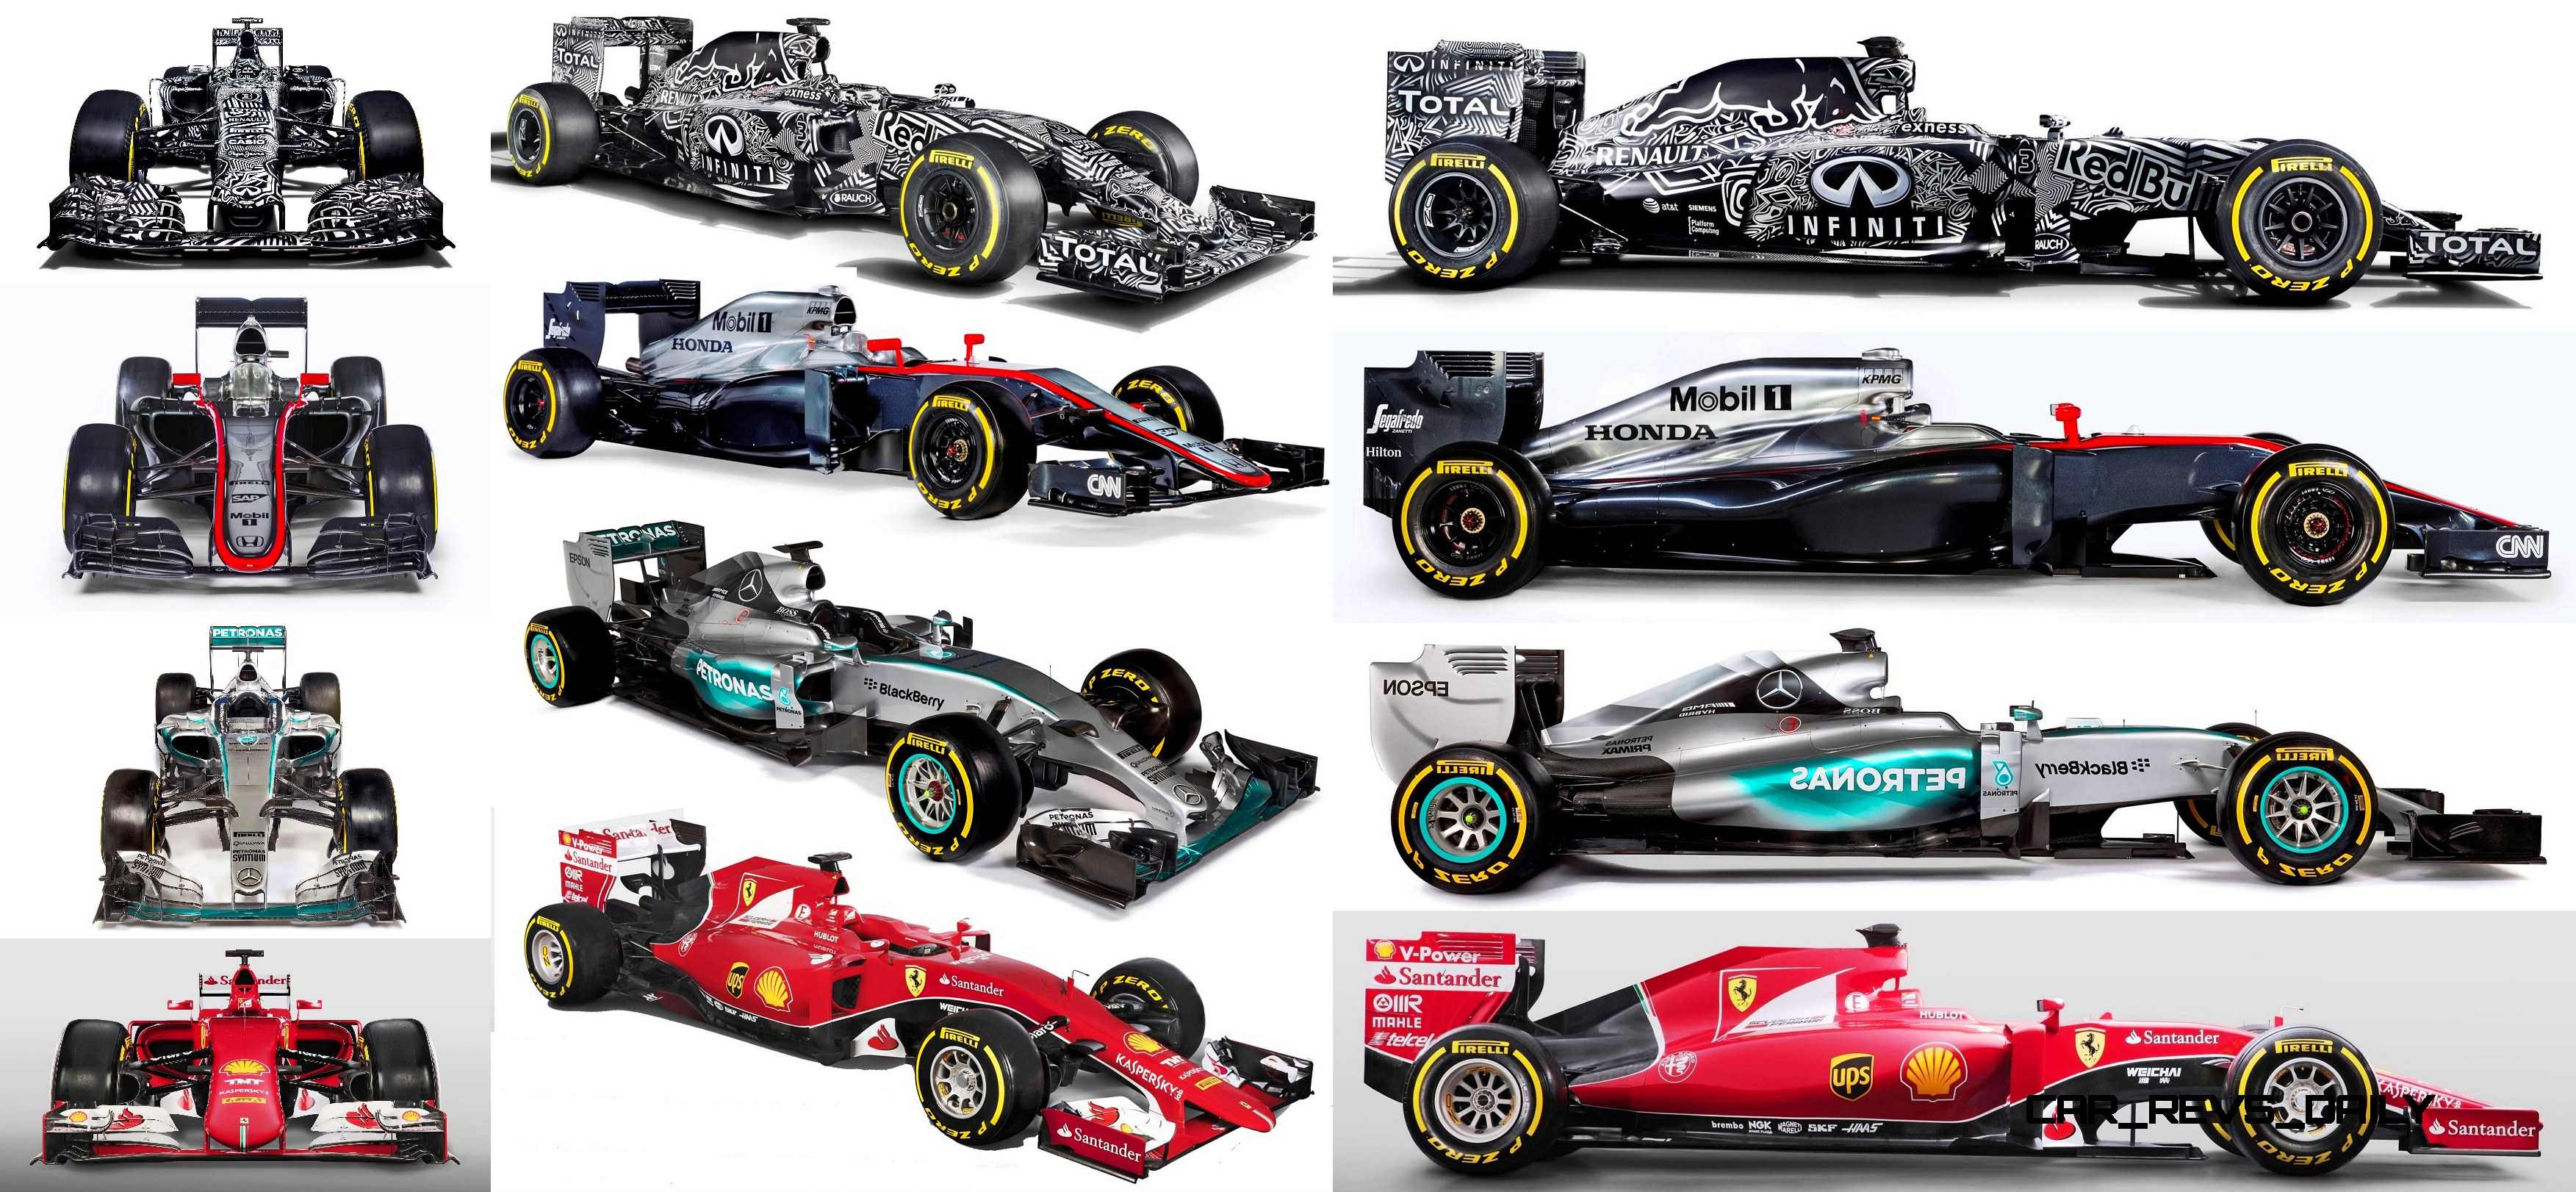 2015 F1 Cars Comparo u2013 Infiniti RB11 vs McLaren-Honda MP4-30 vs AMG W06 vs Ferrari SF15T & McLaren-Honda Topic Hub